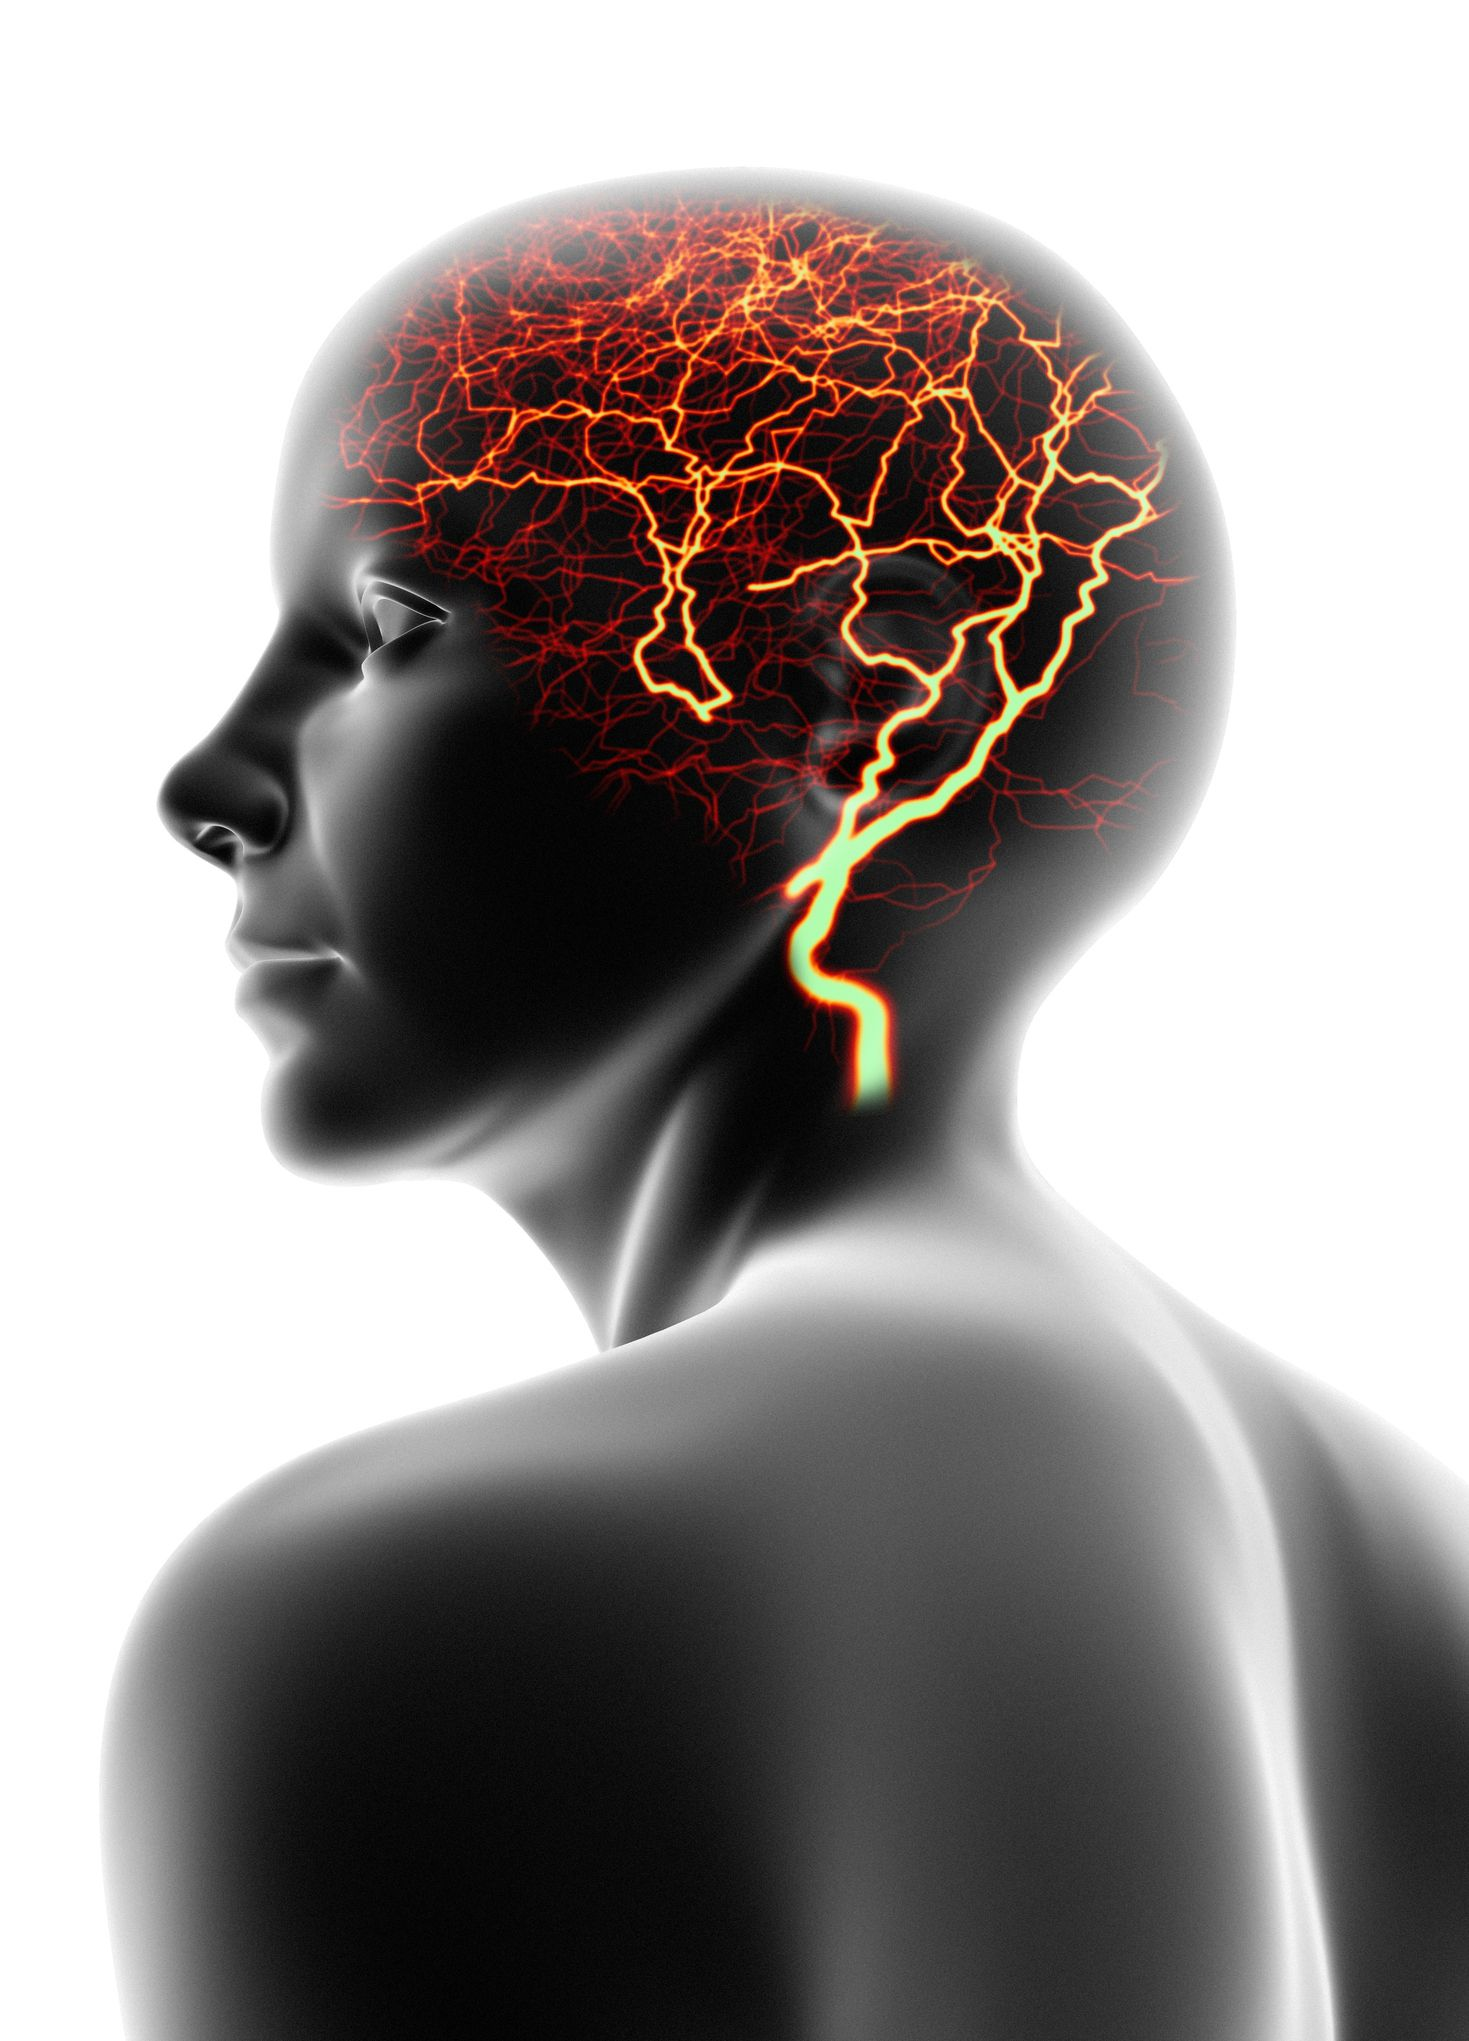 intractable epilepsy symptoms causes and treatment